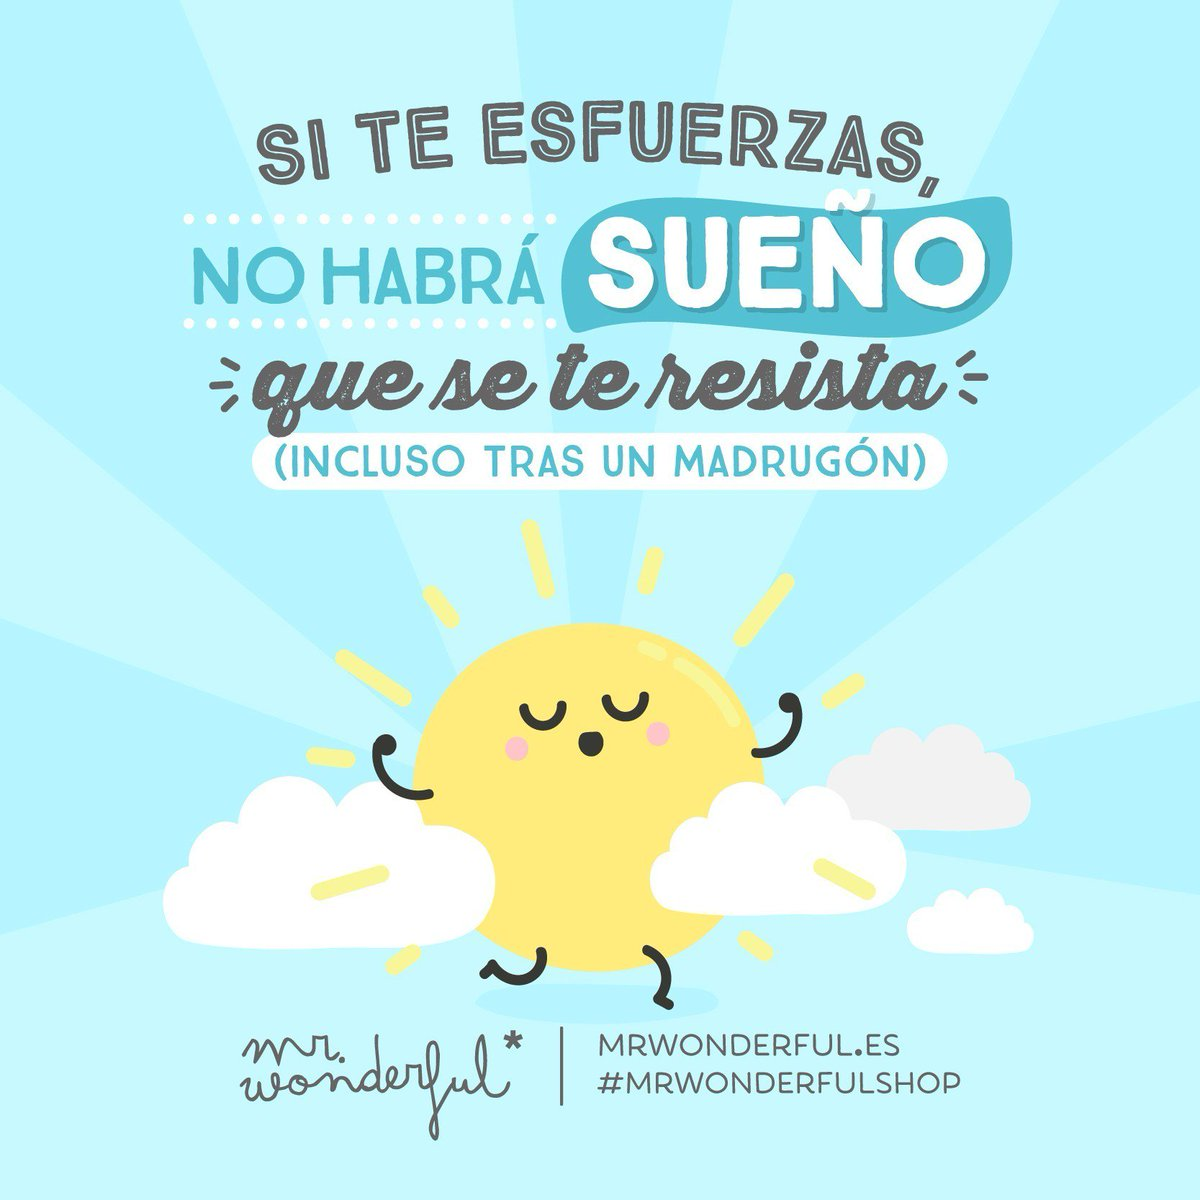 Mr Wonderful Mrwonderful Twitter